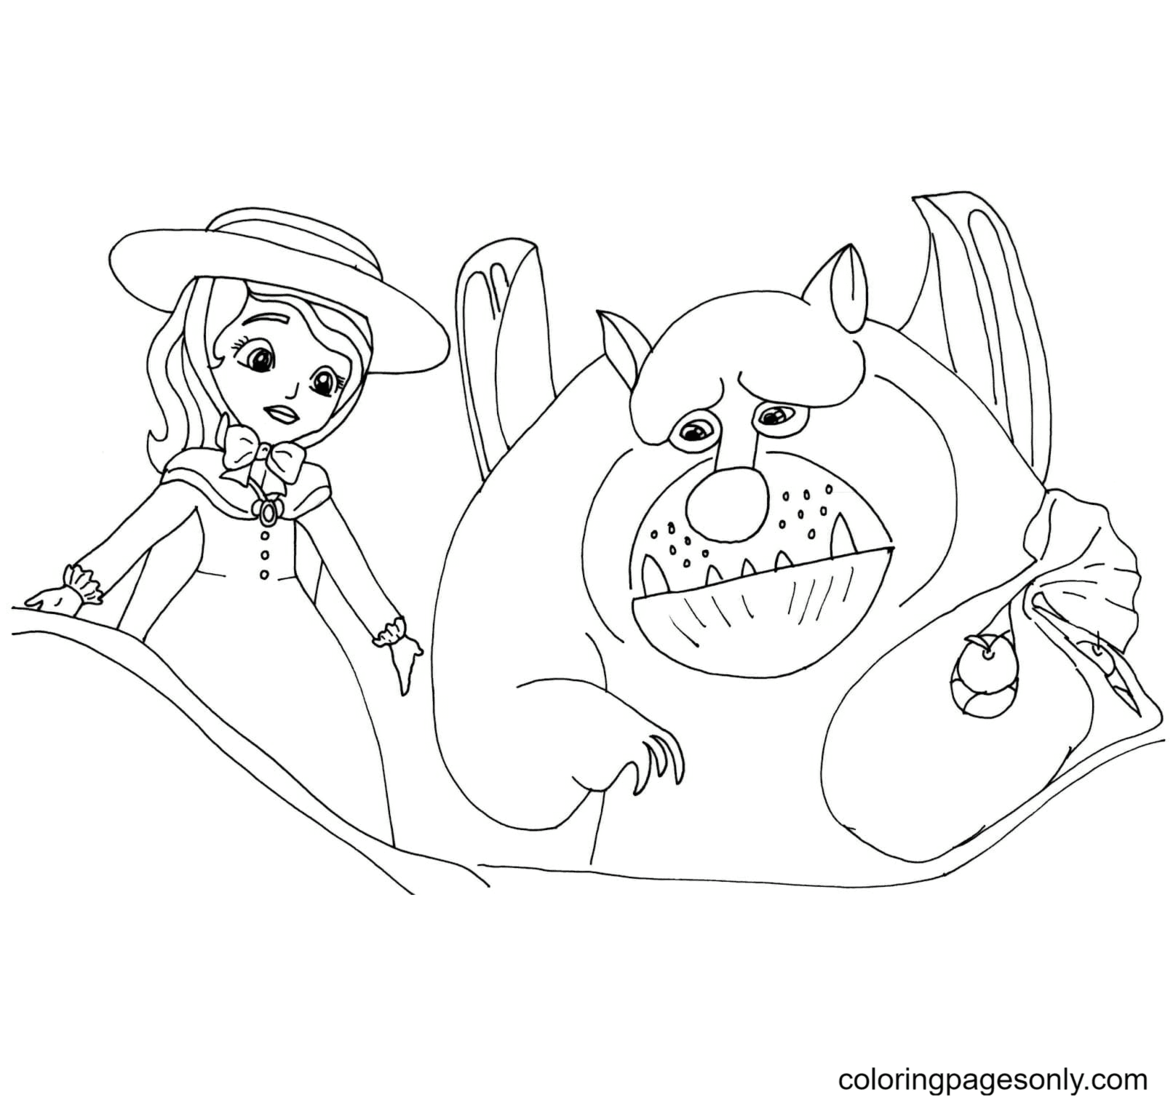 Sofia and her new friend Coloring Page